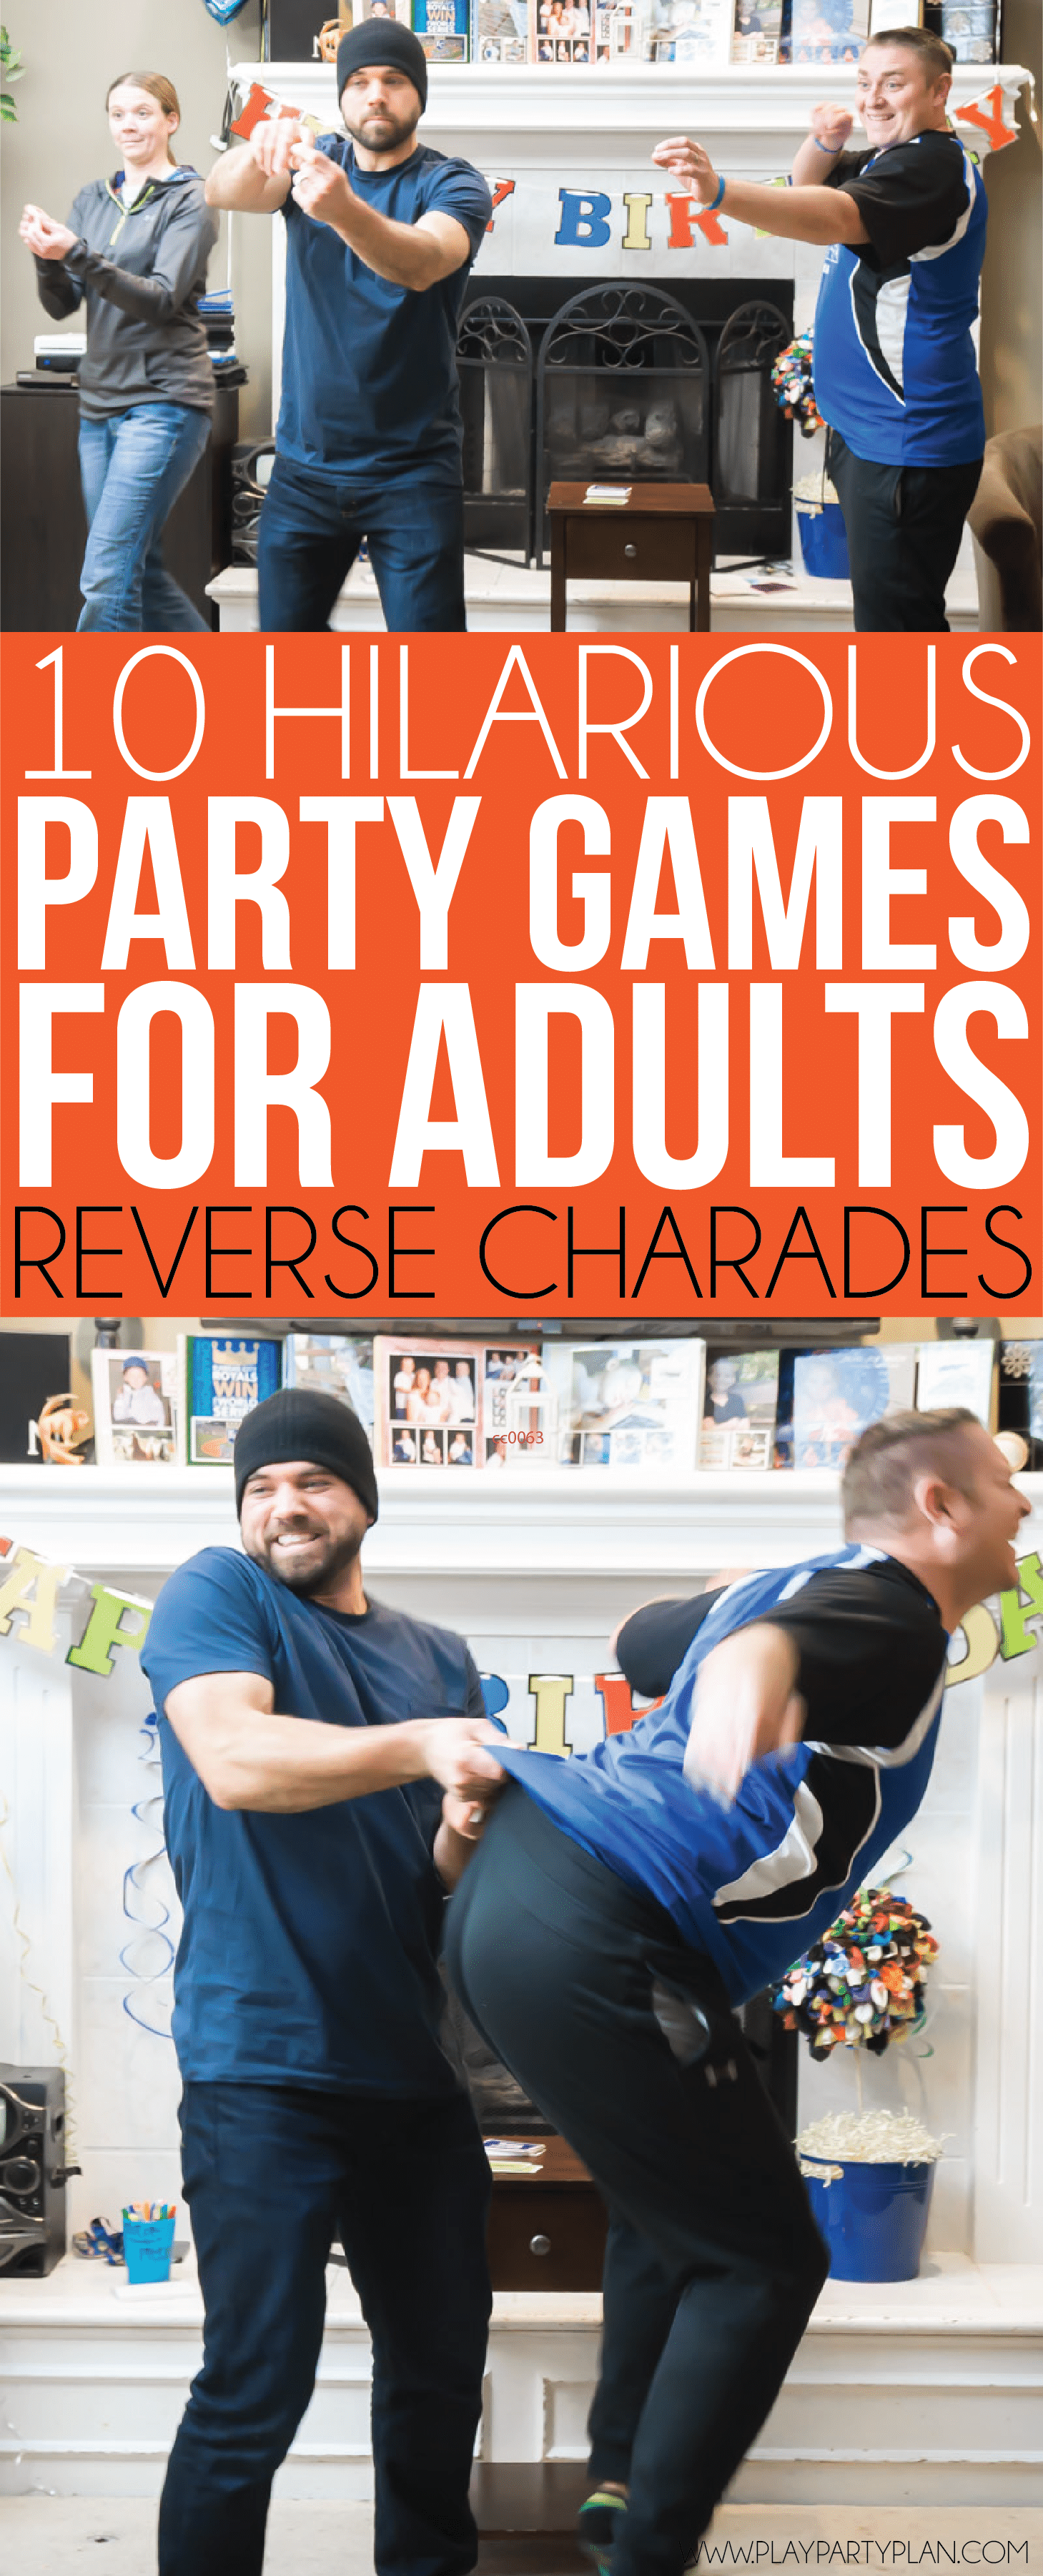 19 Hilarious Party Games For Adults